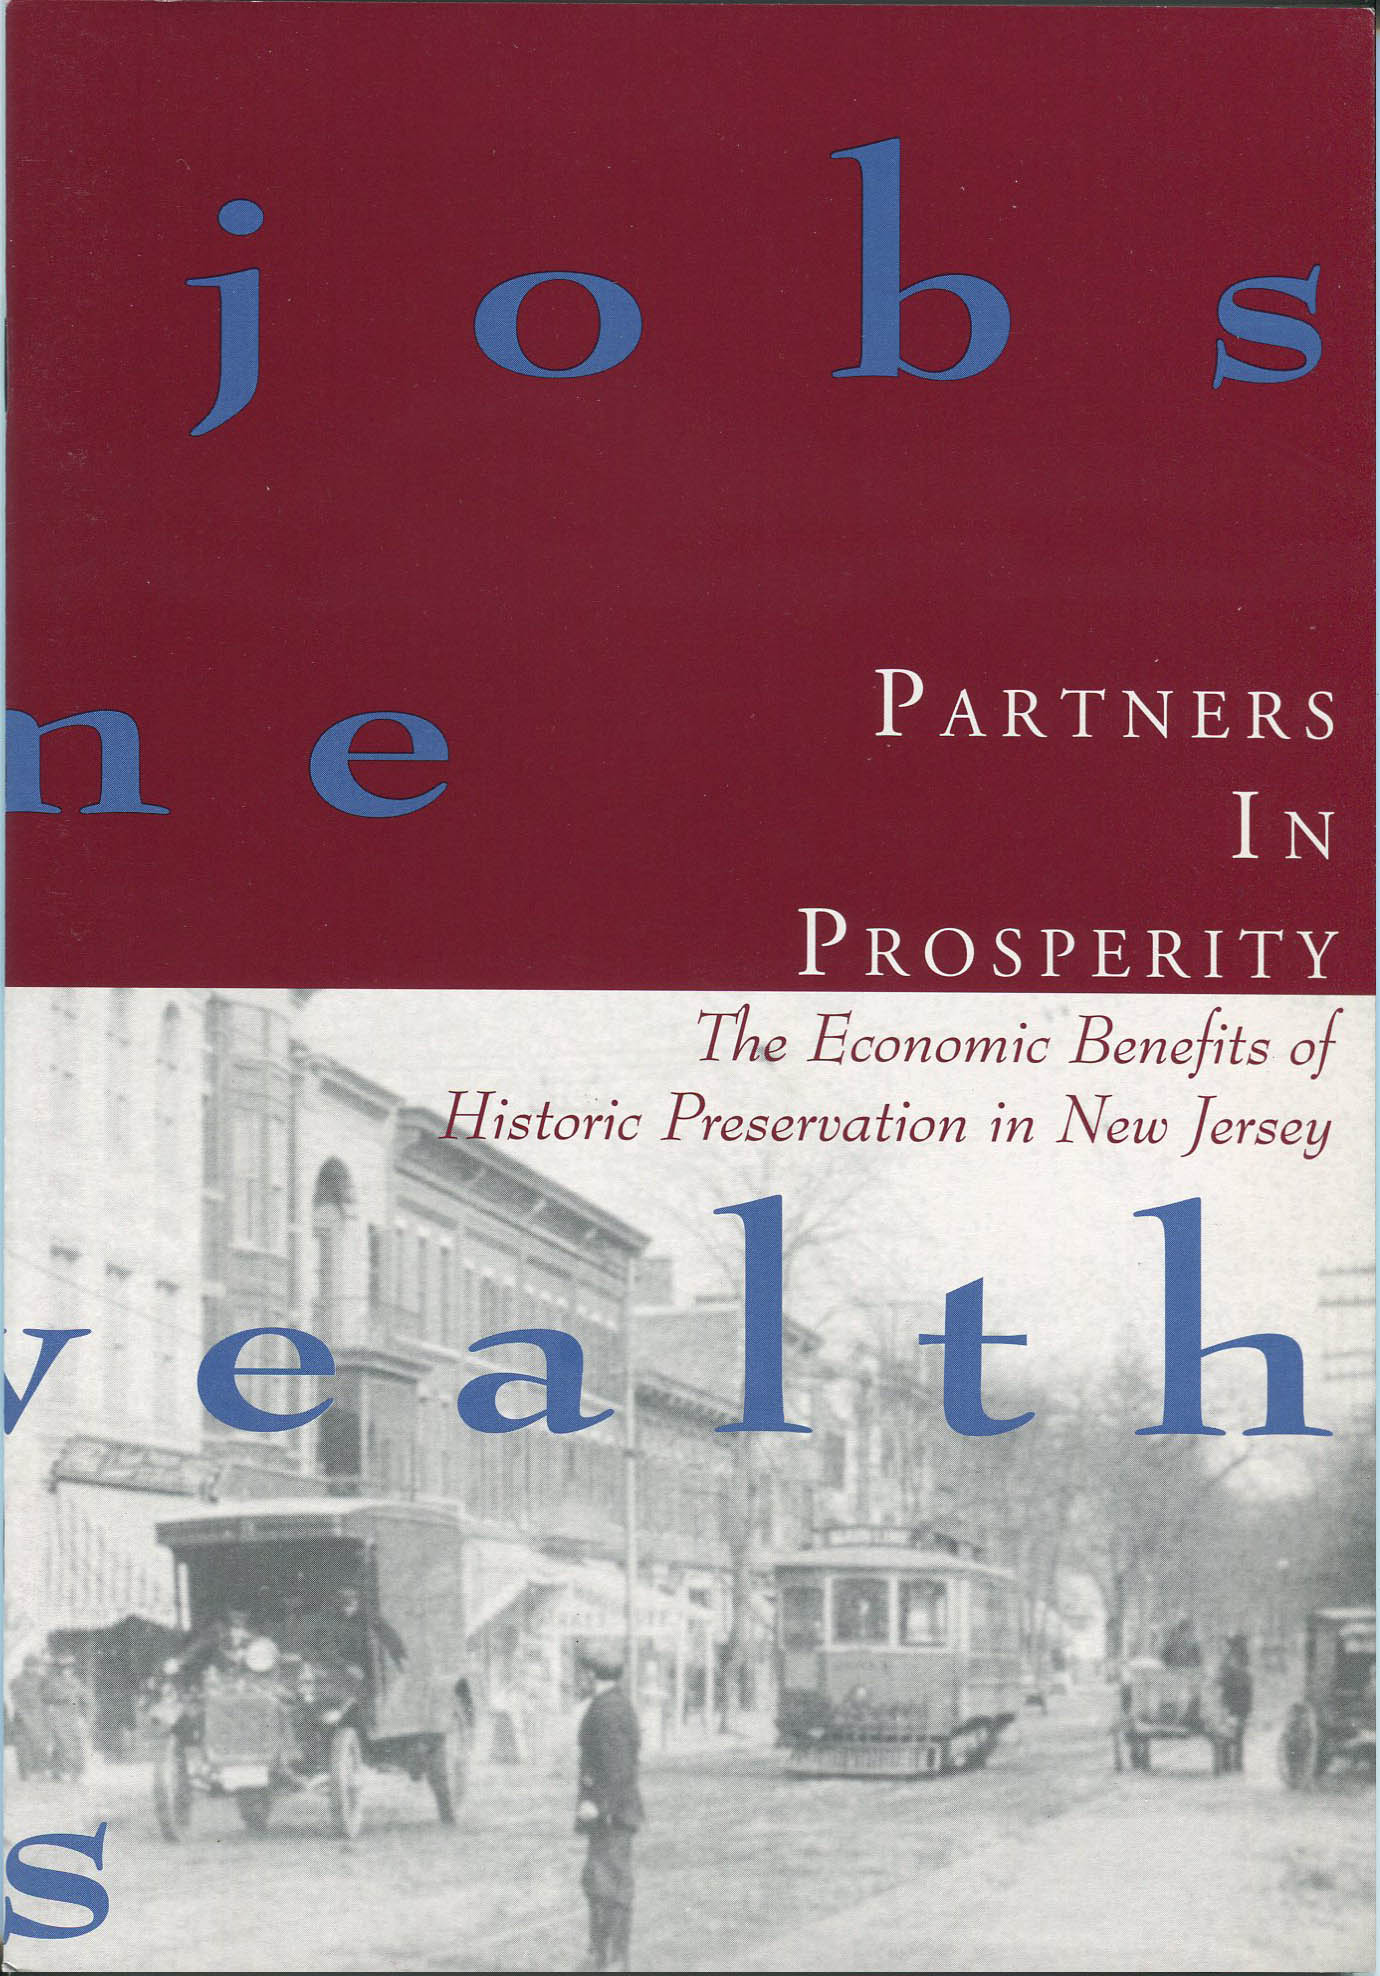 Partners in Prosperity: The Economic Benefits of Historic Preservation in New Jersey (1998-25):